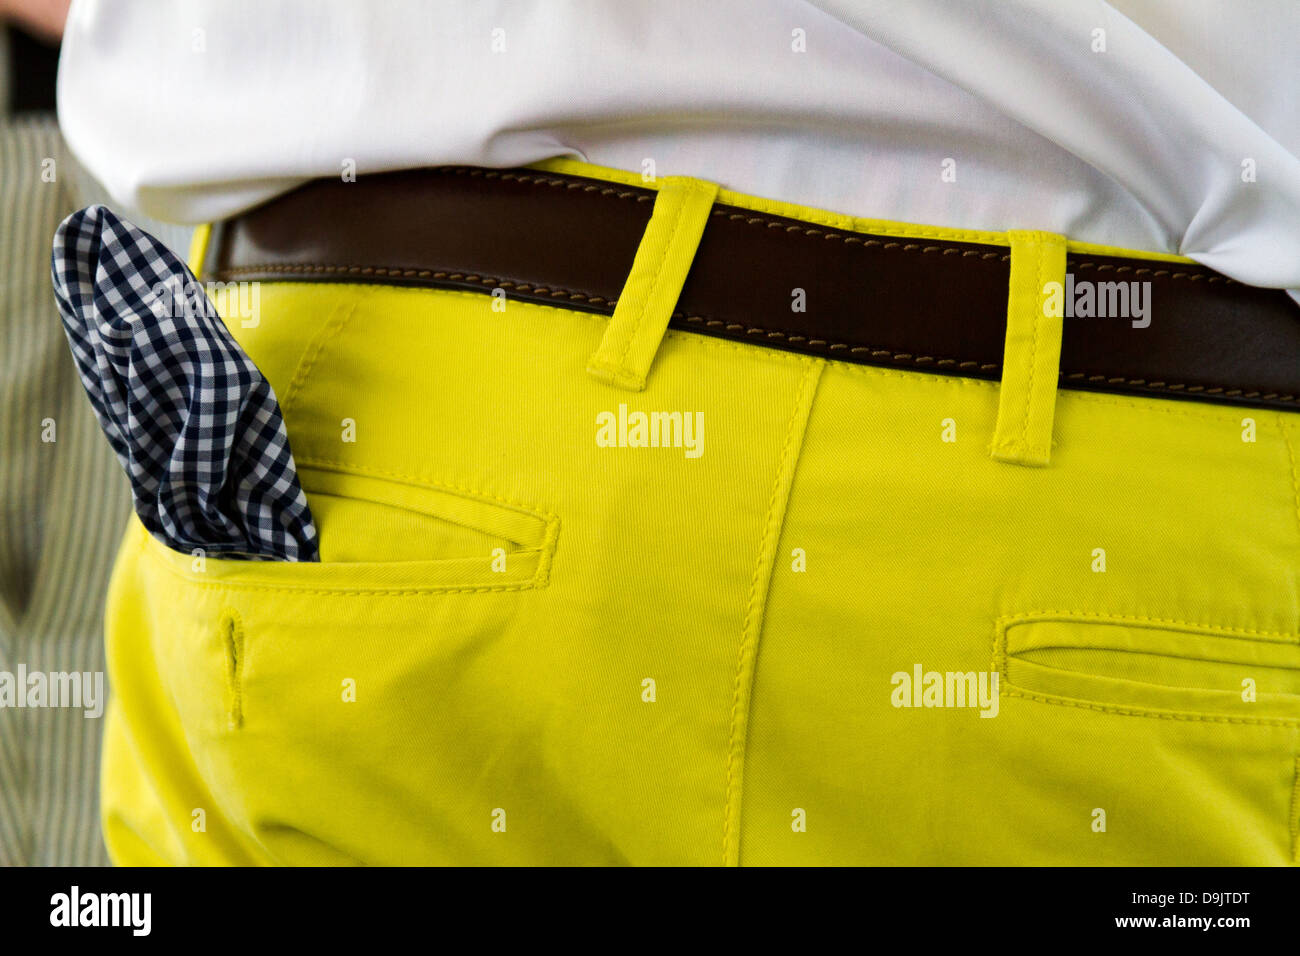 Detail of rear view of yellow pants with checkered handkerchief in pocket. - Stock Image